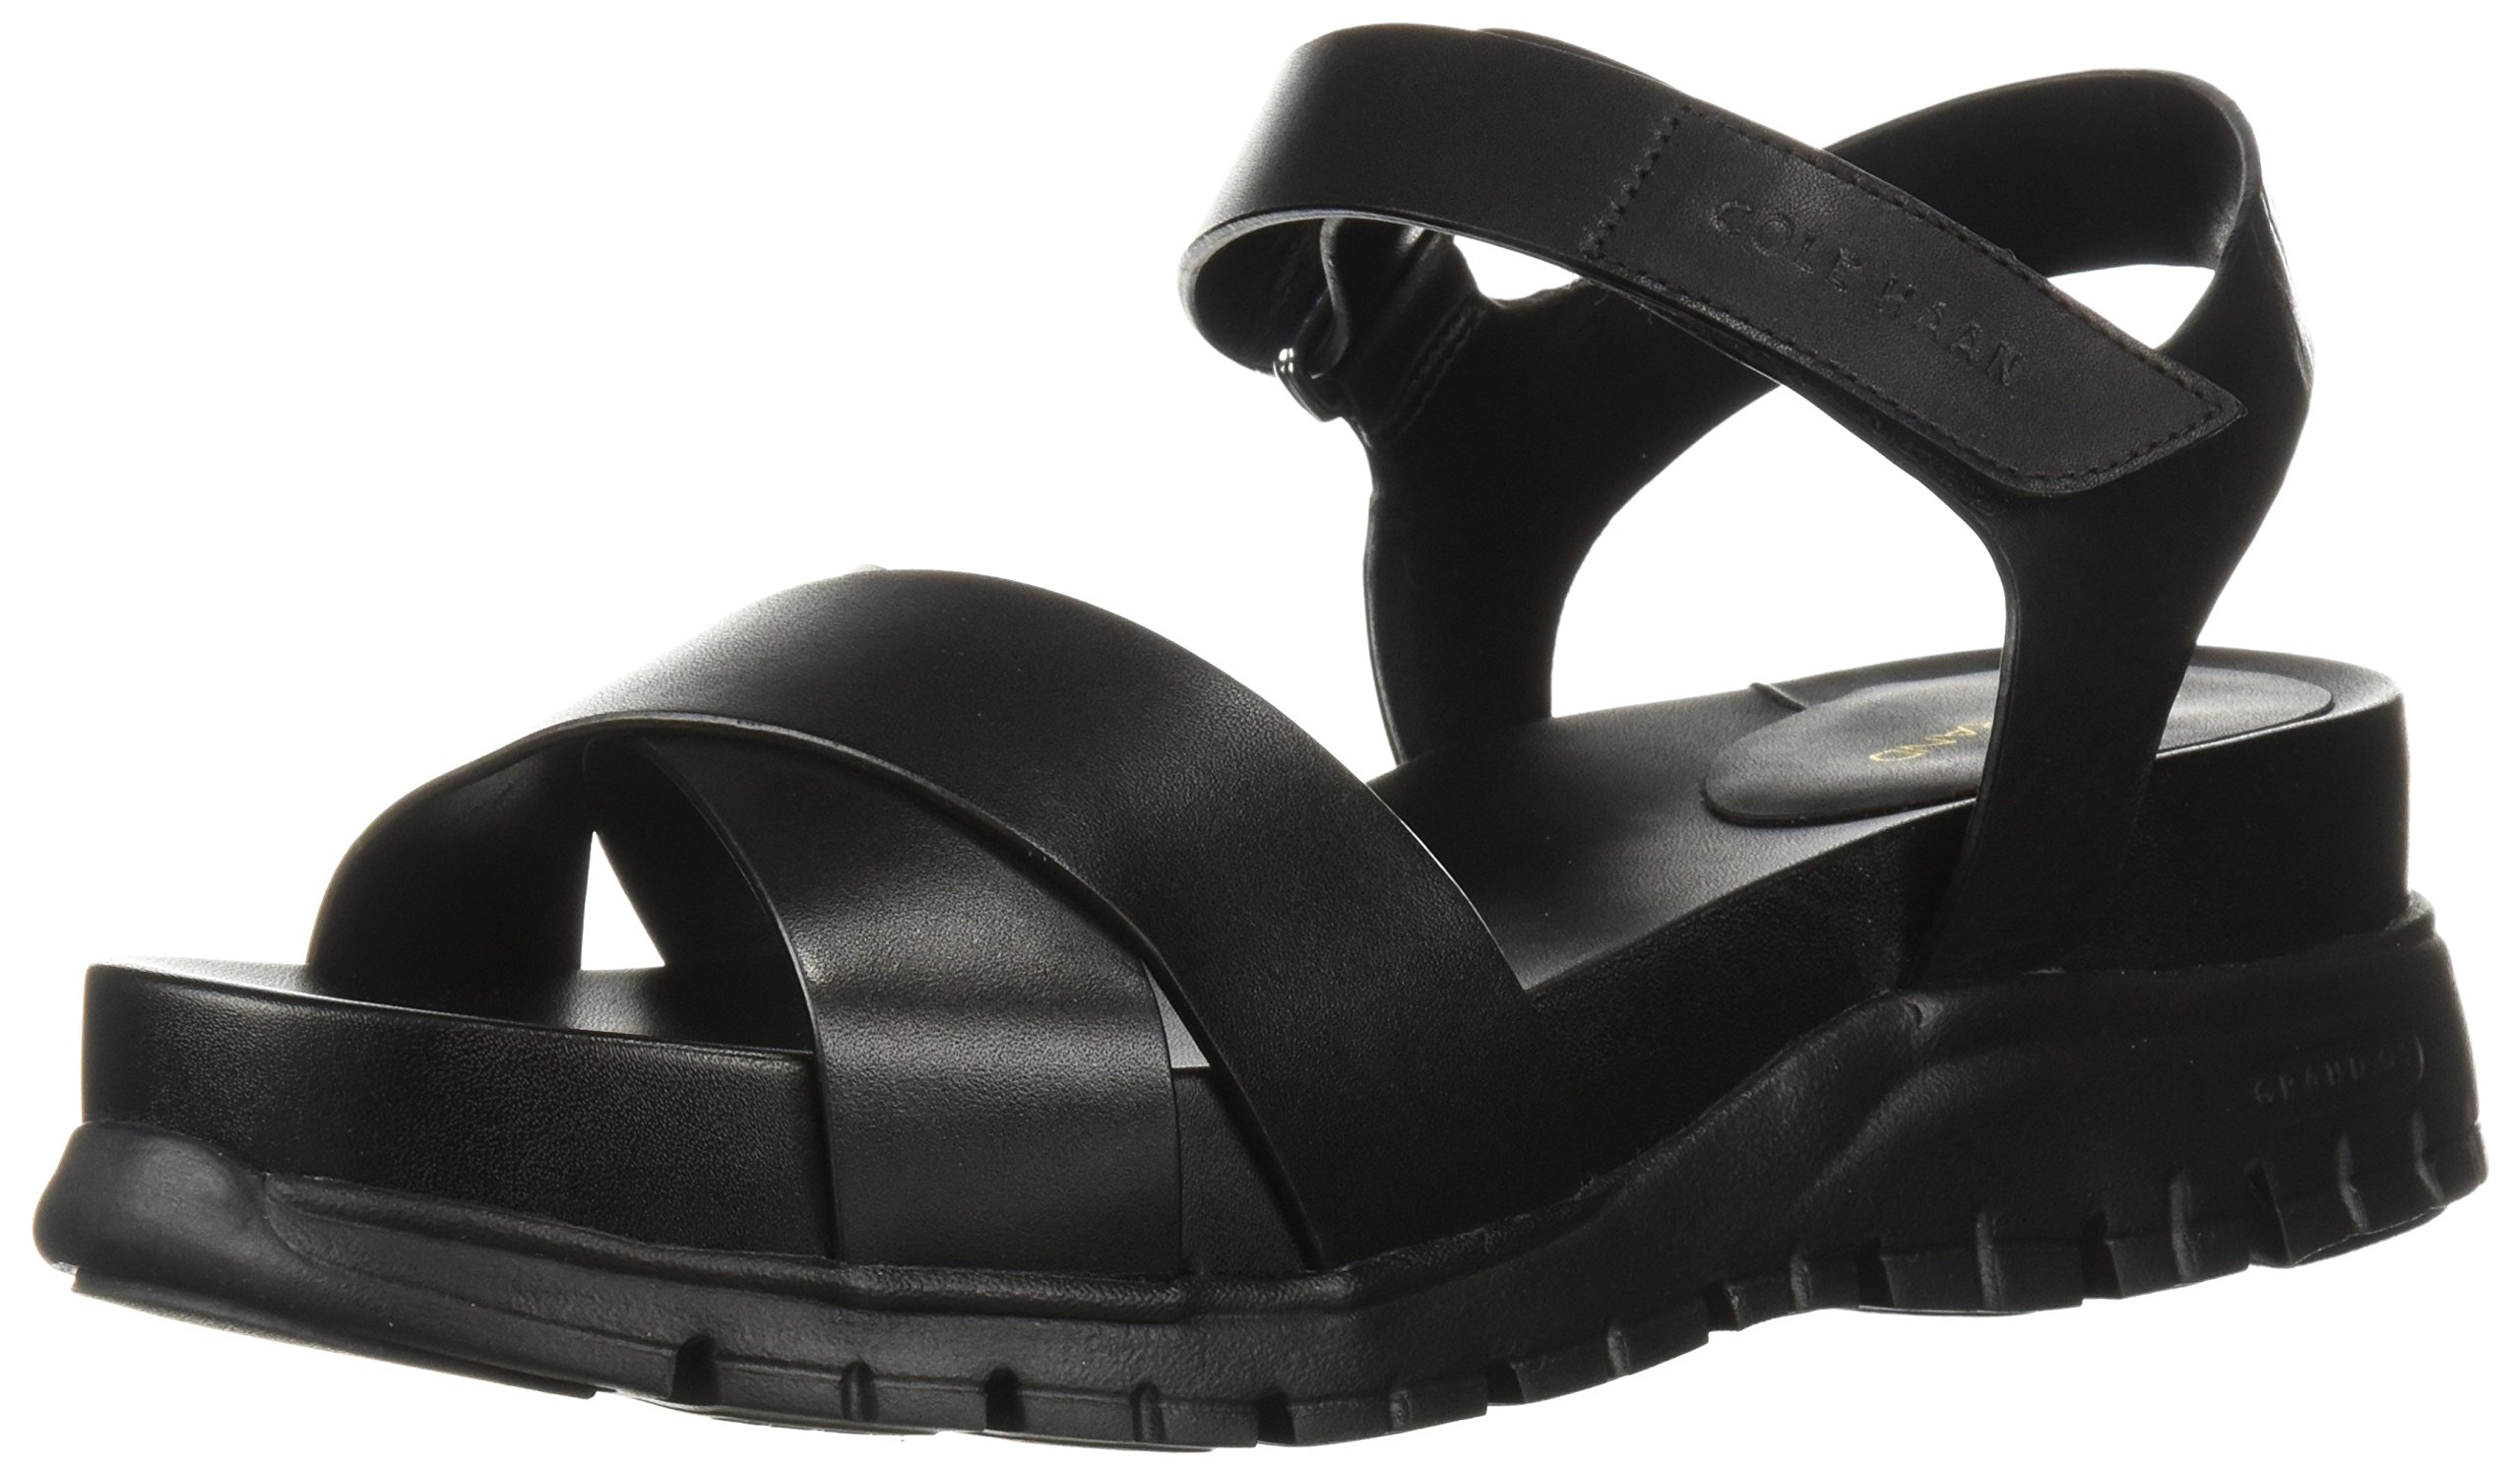 Cole Haan Women's Zerogrand II Flat Sandal, Black Leather, 6 B US